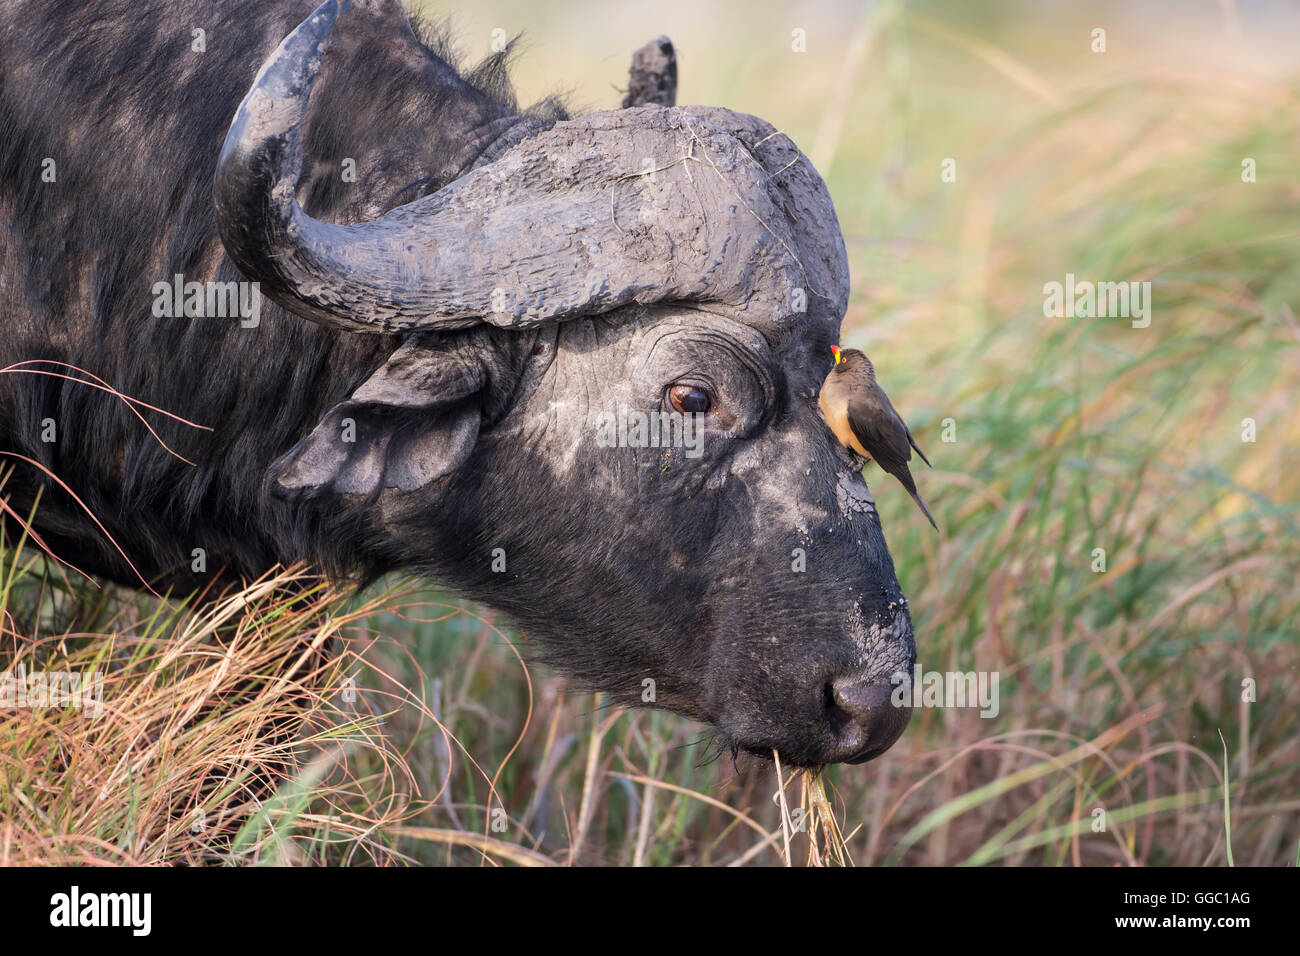 Close up of a Cape Buffalo head Syncerus caffer with an Oxpecker on its face - Stock Image